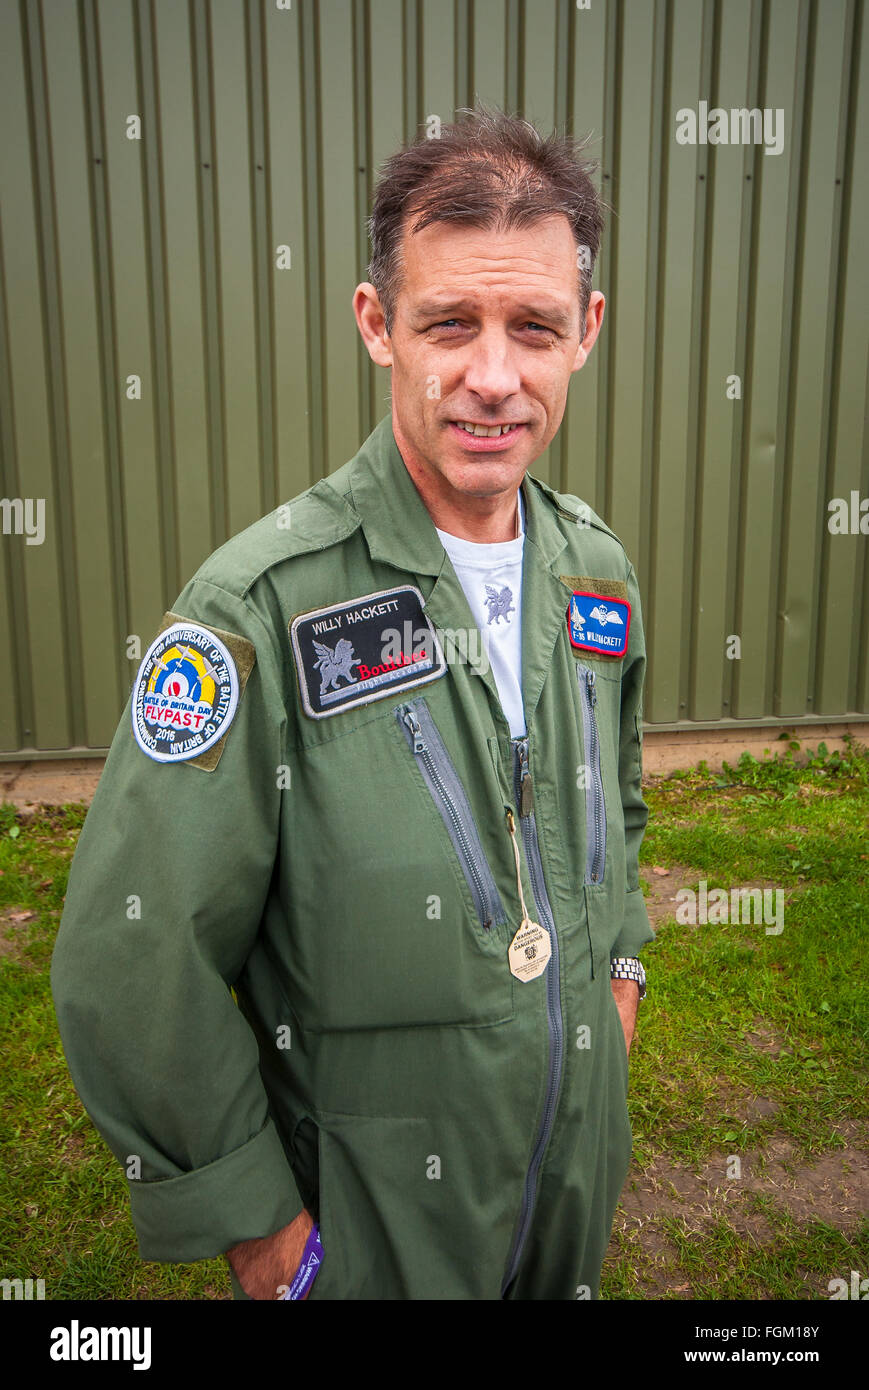 Willy Hackett MBE is an experienced air display pilot who previously flew with the Royal Air Force and Royal Navy. - Stock Image